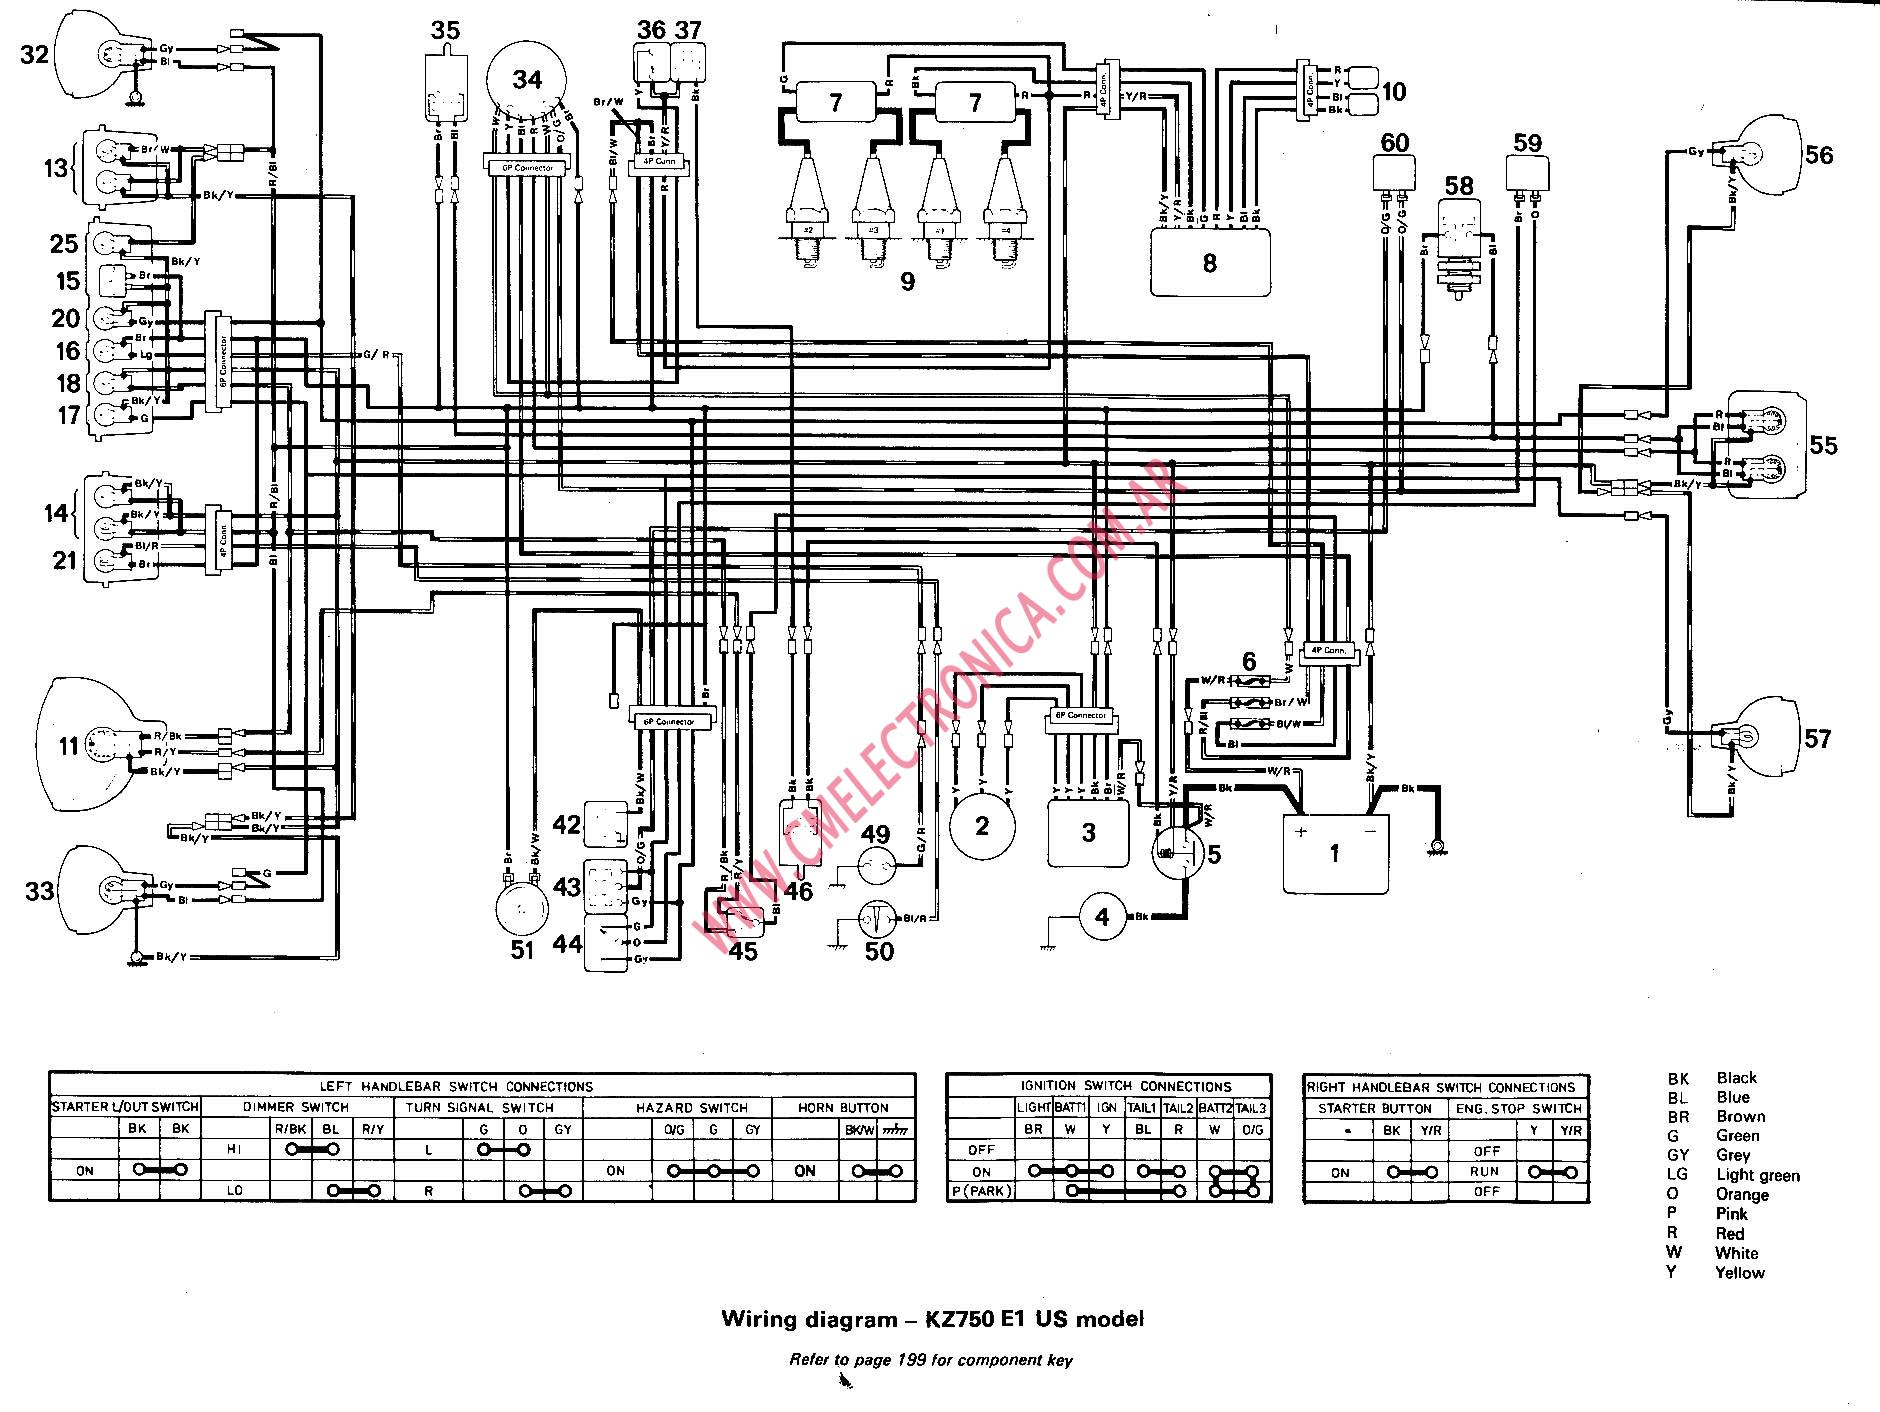 kawasaki brute force 750 wiring diagram deutz 2016 diagrama kz750